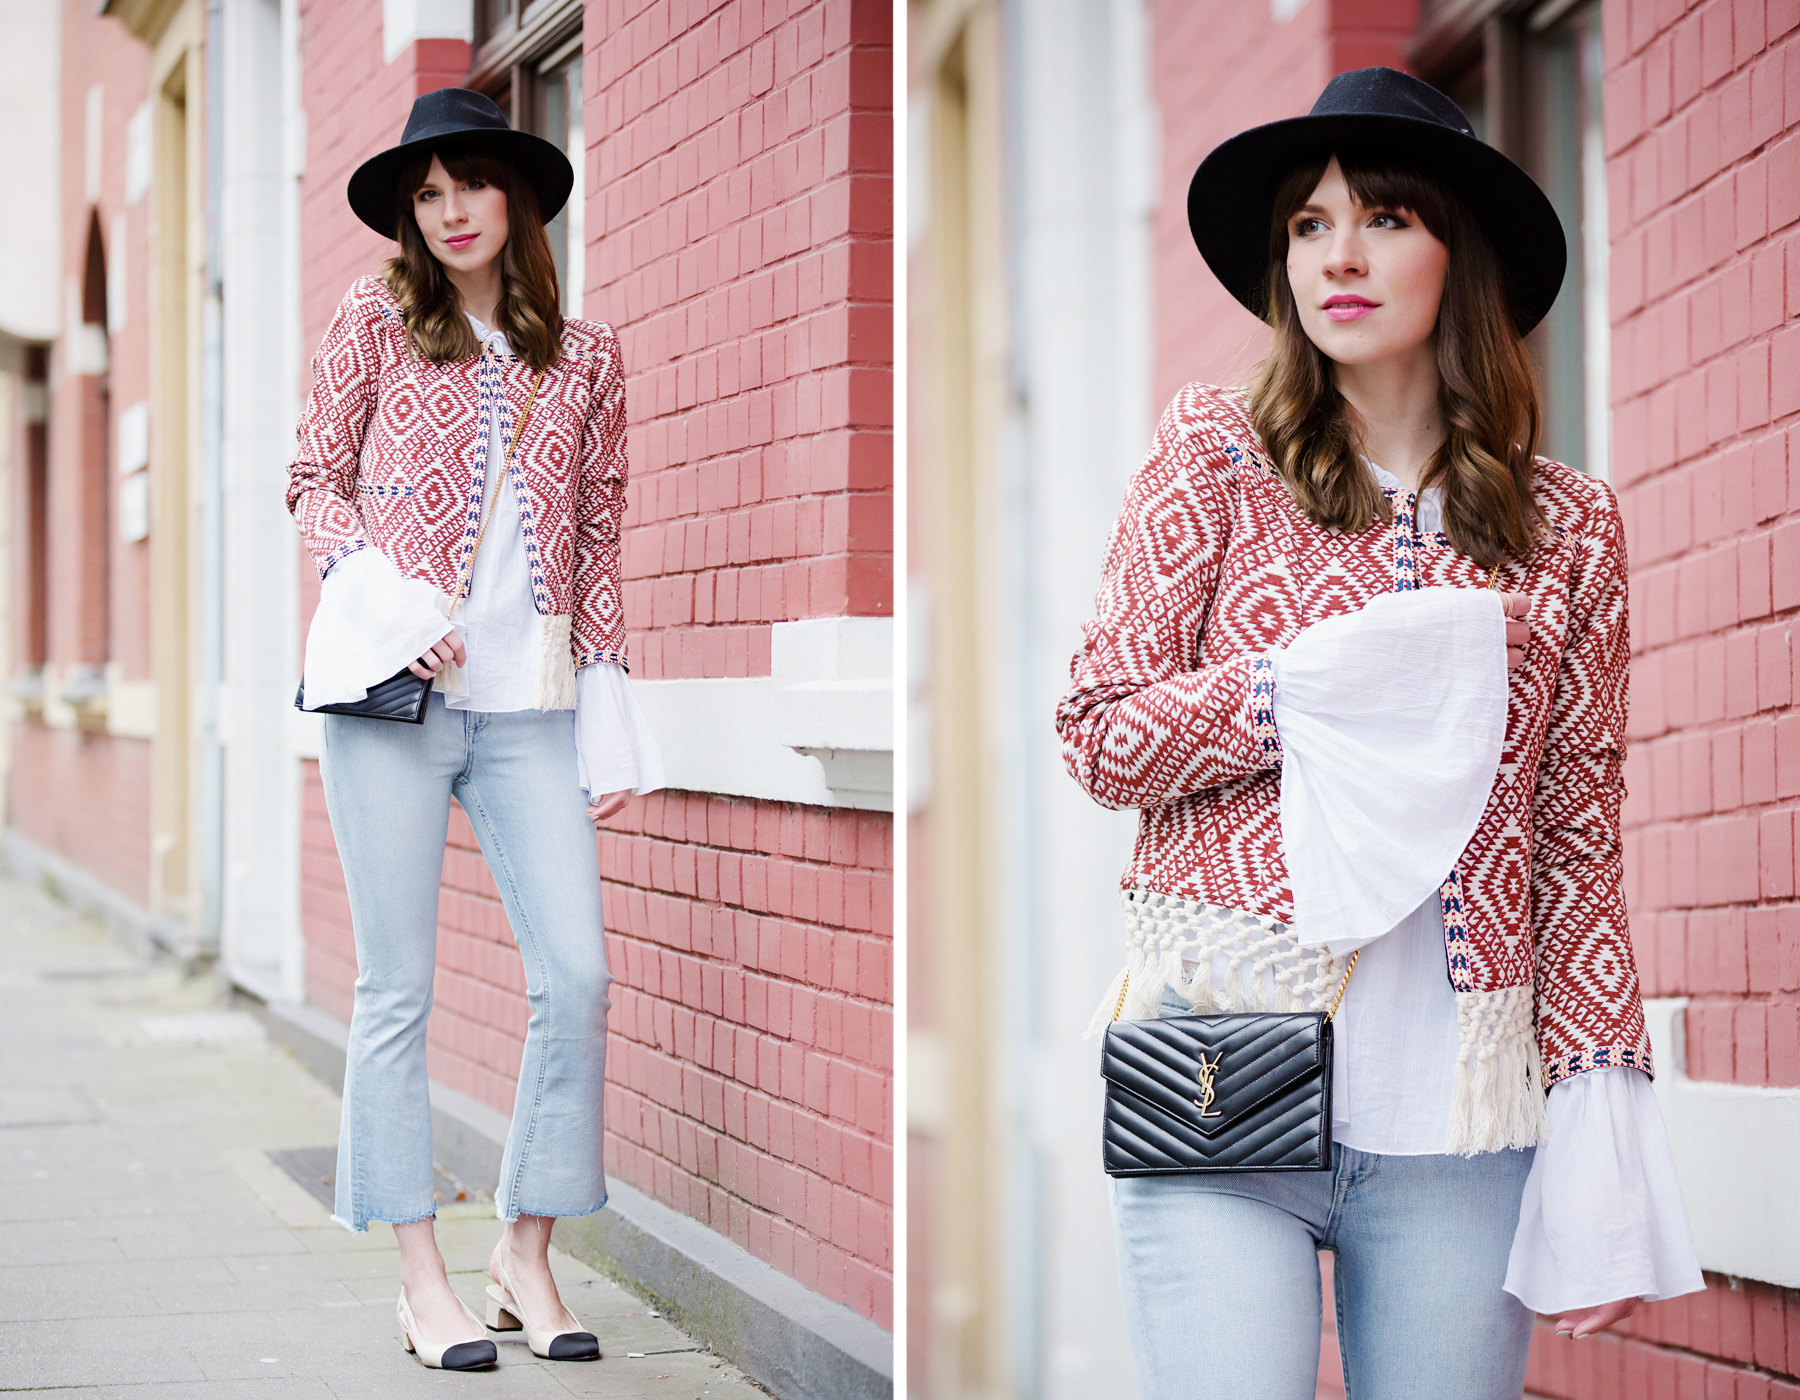 ootd outfit styling lookbook red hippie boho jacket shopbop saint laurent paris ysl bag flared jeans chanel slingback festival style cool girl bangs parisienne fashionblogger cats & dogs ricarda schernus blog 2